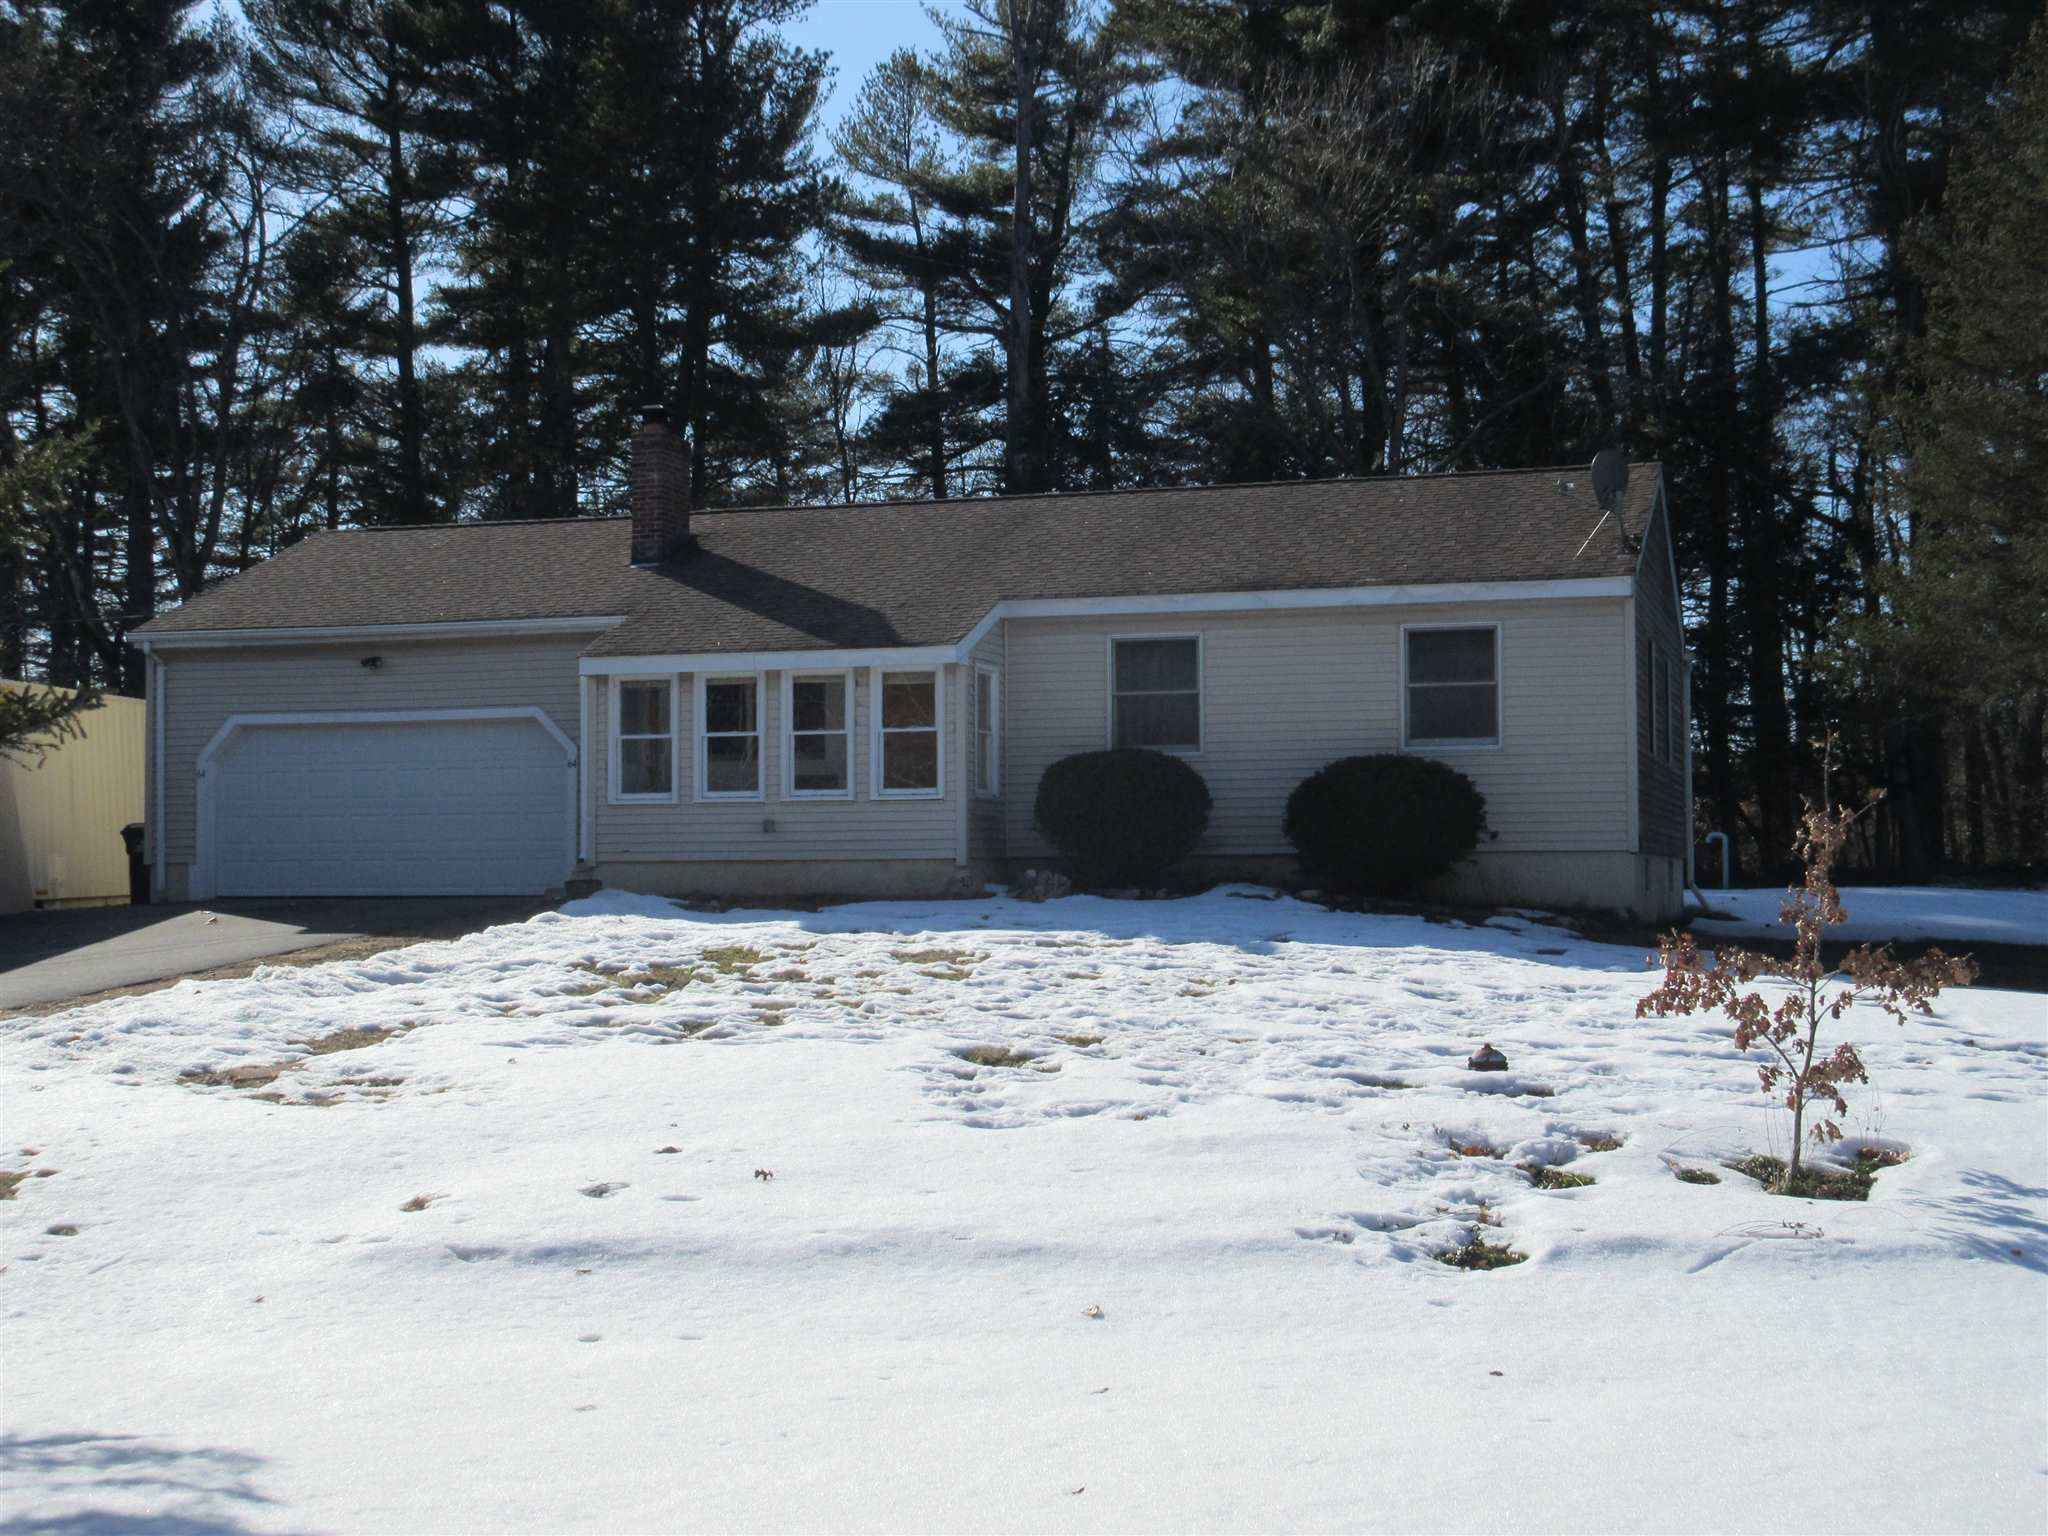 MLS 4849577: 64 Gowing Road, Hudson NH